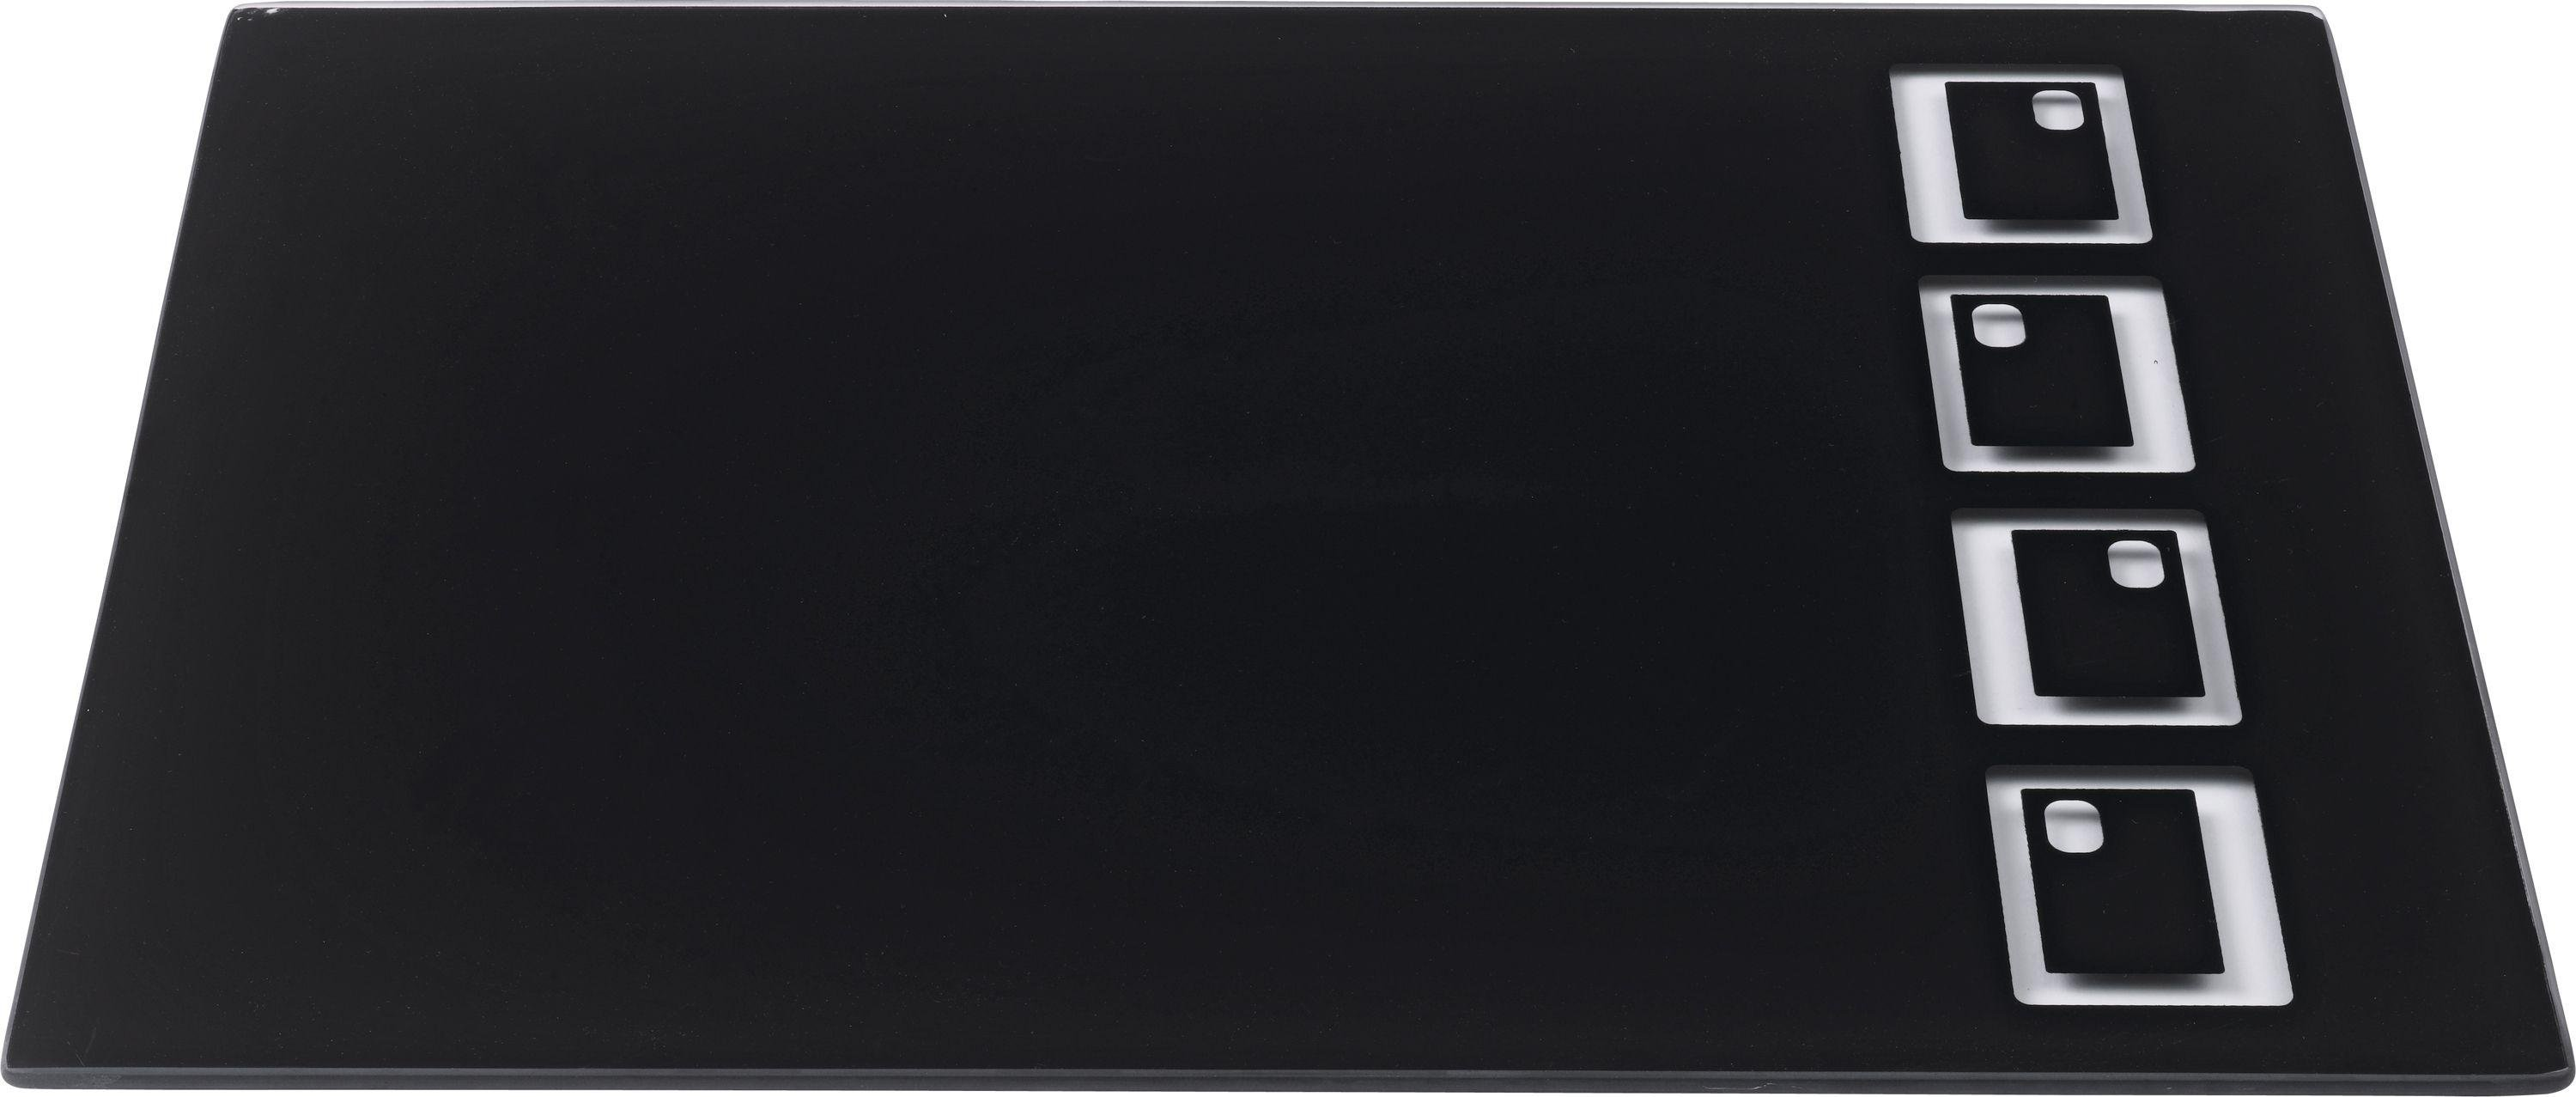 Image of HOME - Oblong Glass Worktop Saver